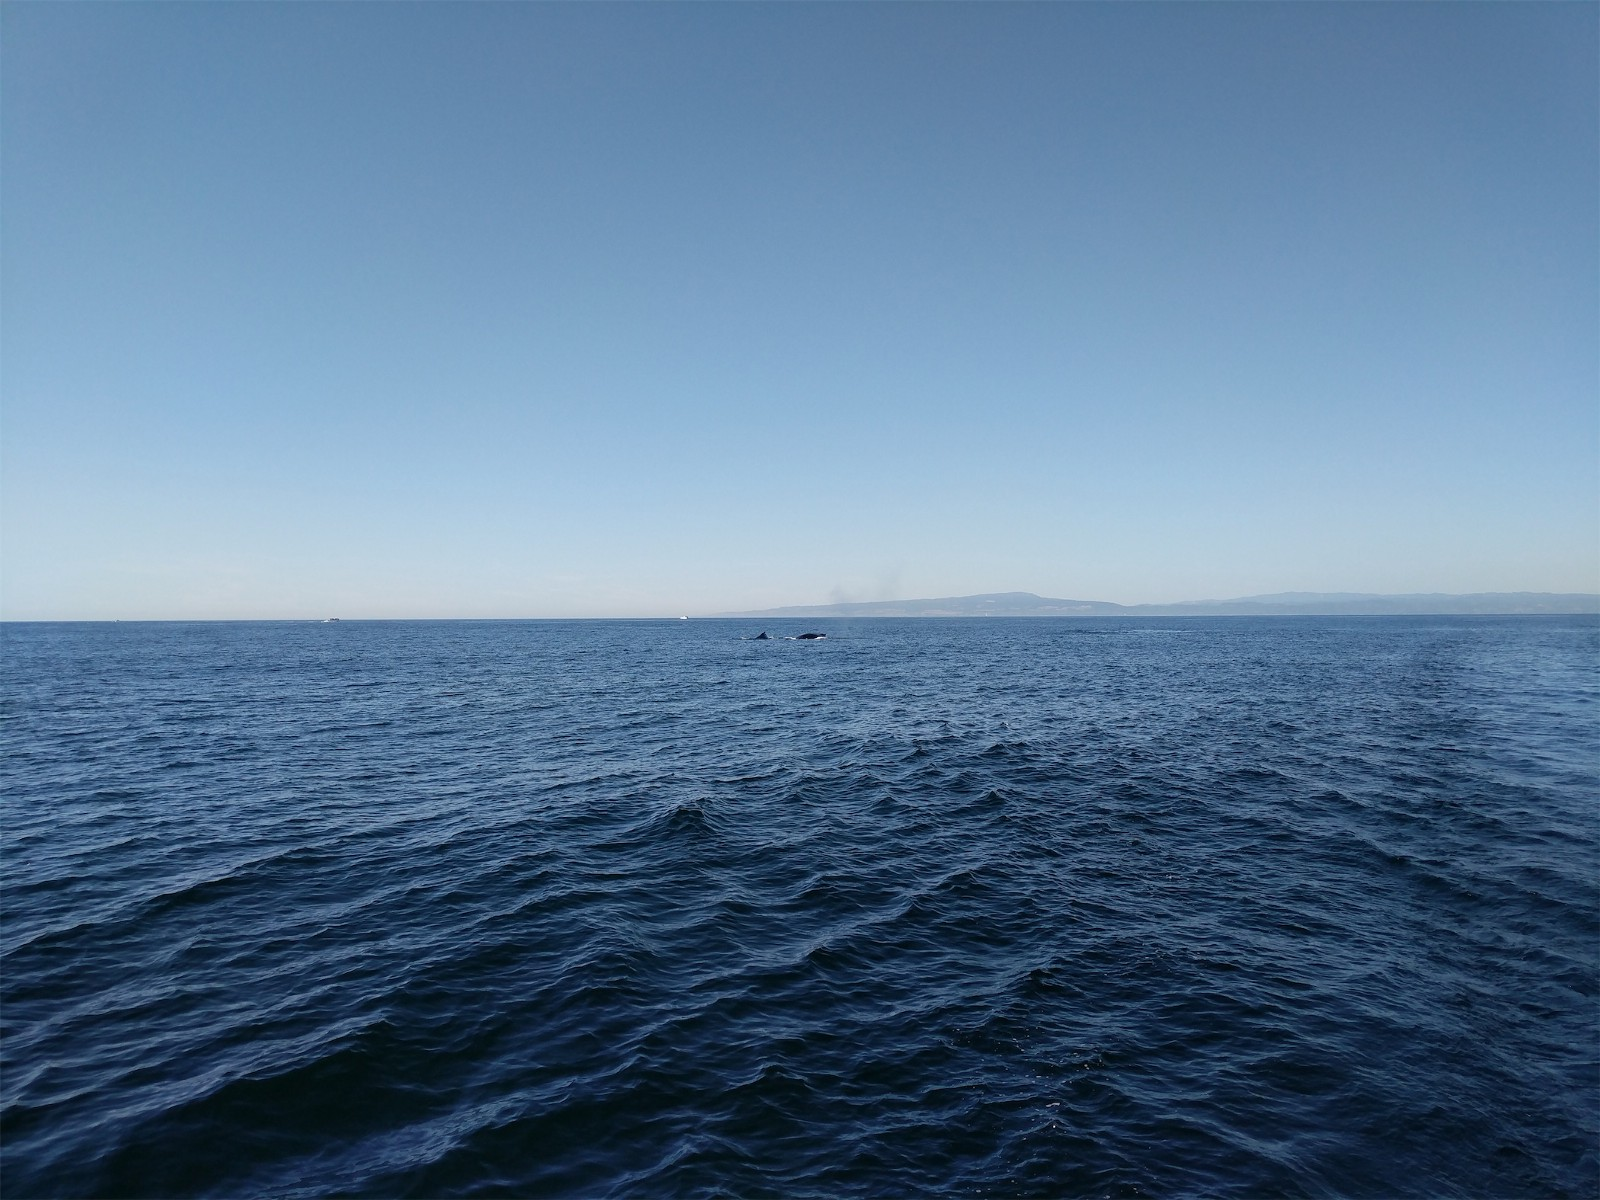 This Photo Does Not Do The Whale Sightings Justice